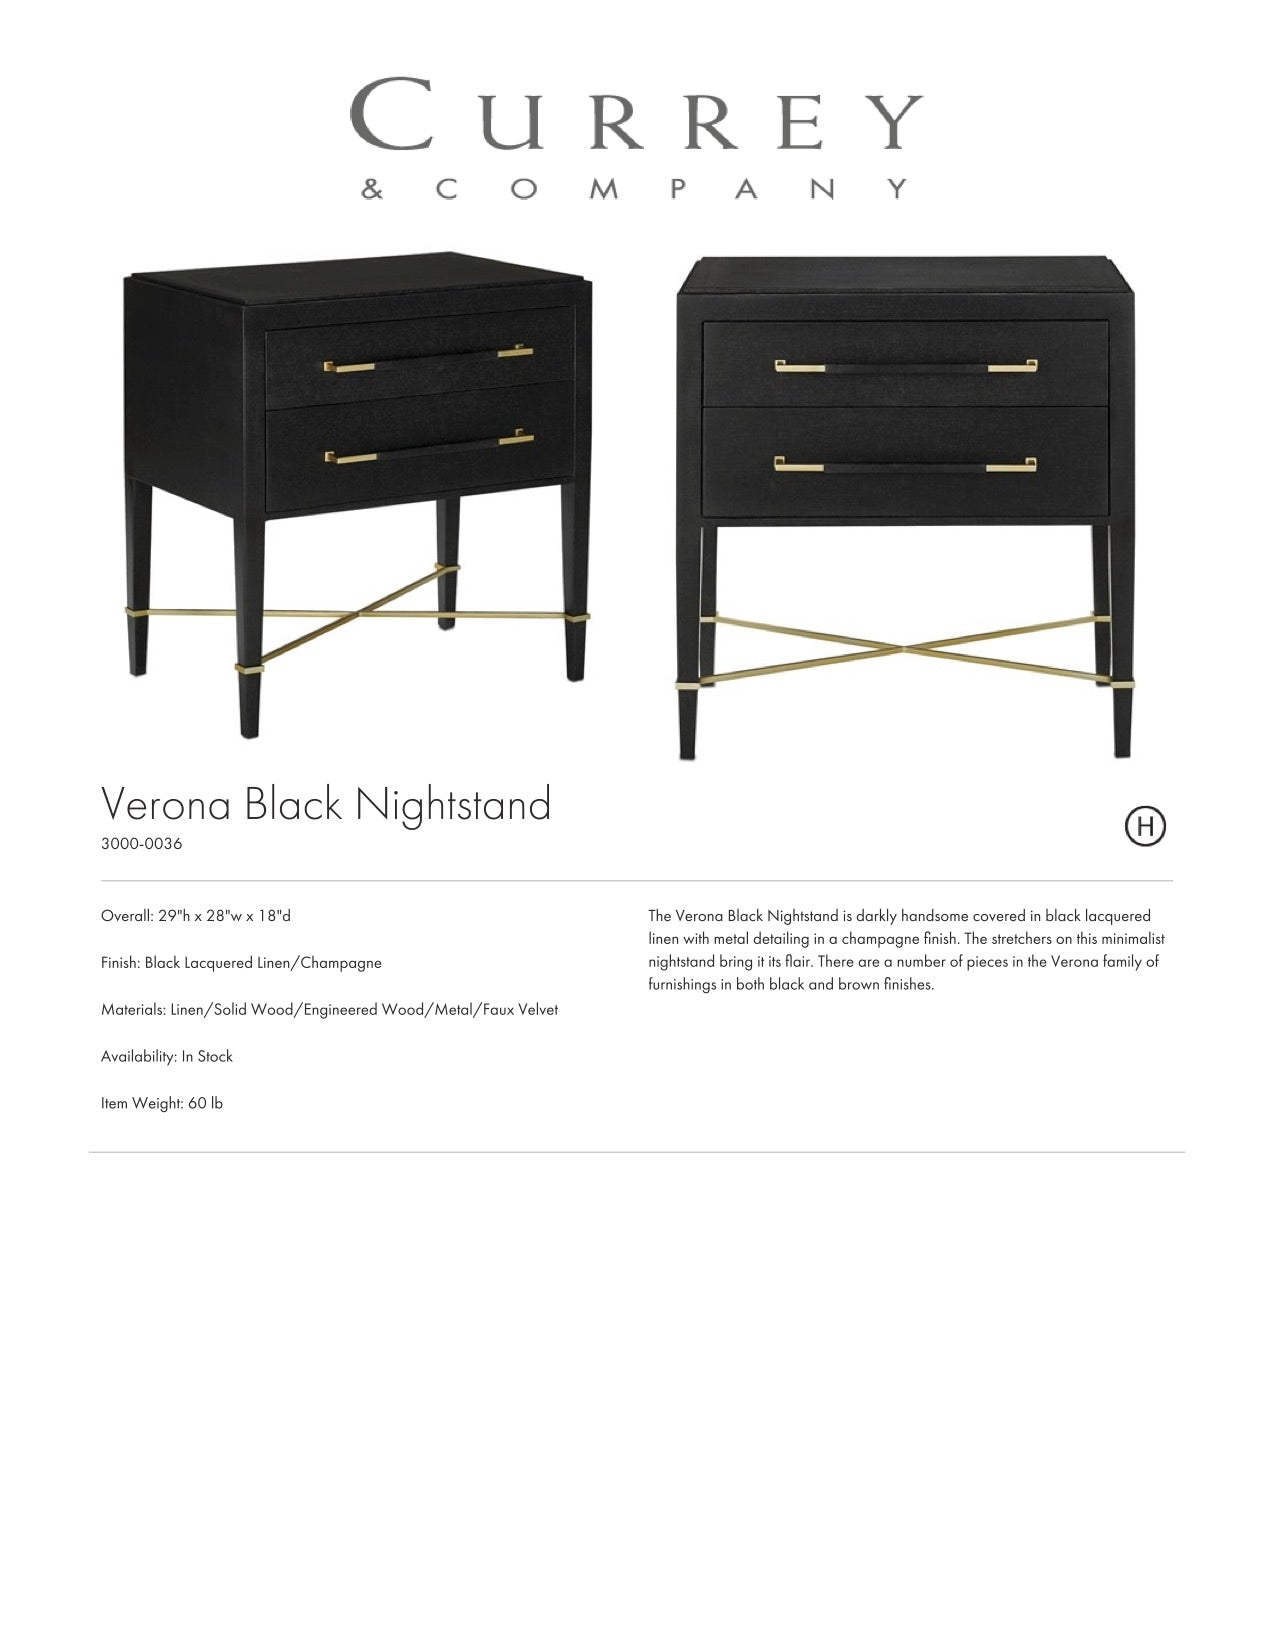 Currey & Company Verona Black Nightstand Tearsheet